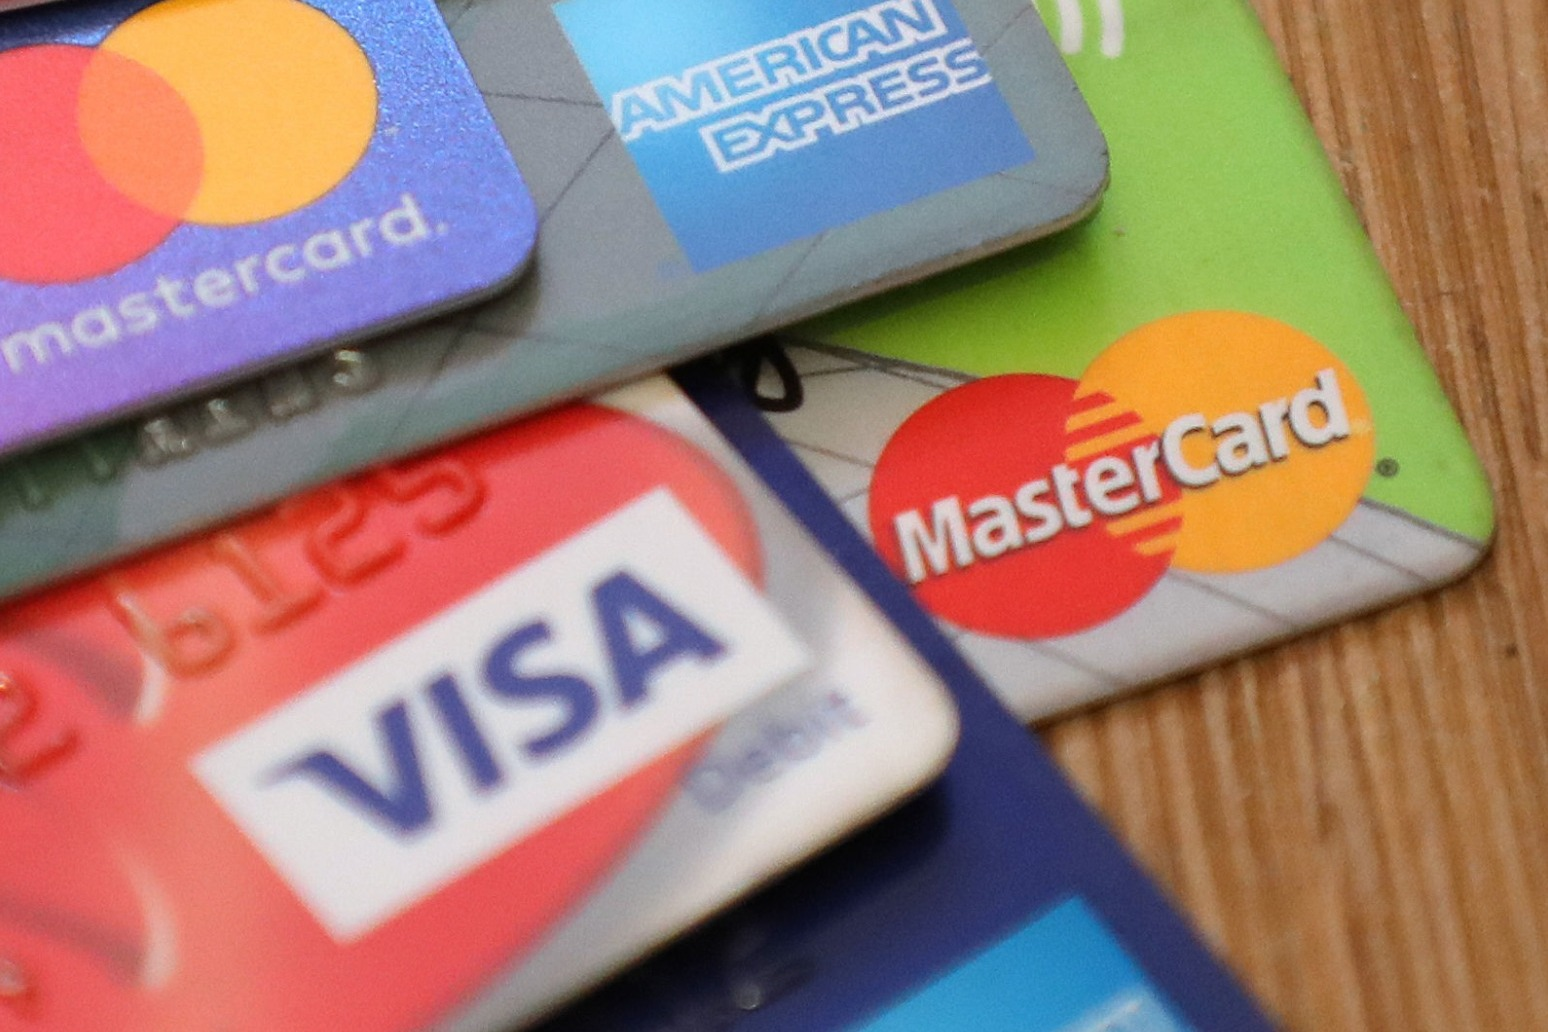 Debit card spending higher at start of 2020 than a year earlier - says bank